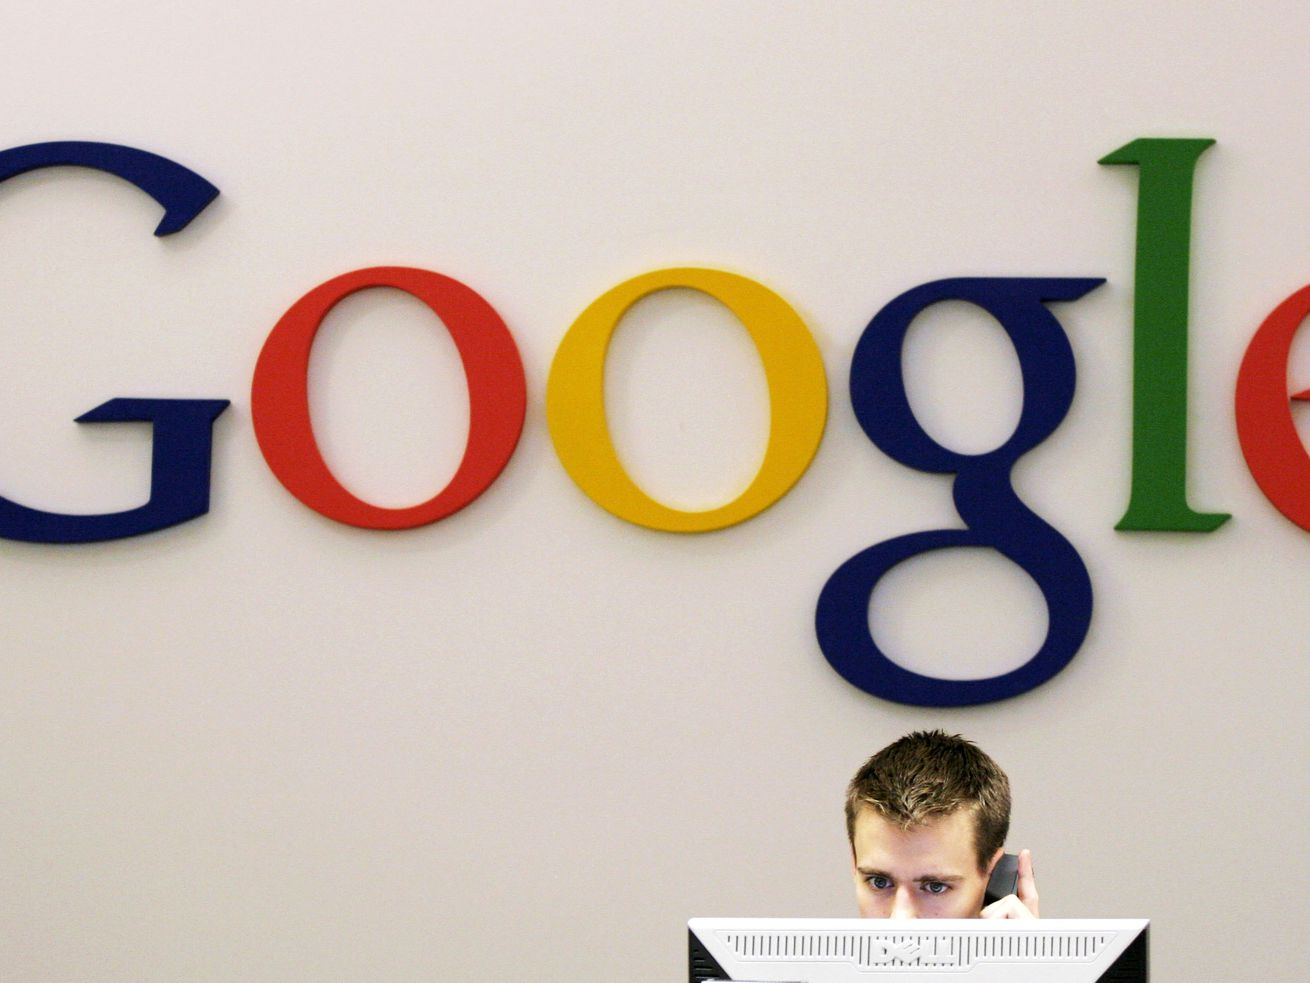 """In this Oct. 2, 2006 file photo, a Google receptionist works at the front desk in the company's office in New York. Australia announced a police investigation Sunday, June 6, 2010 into whether Google illegally collected private information from wireless networks, becoming at least the second country to probe the Internet giant's """"Street View"""" mapping service. (AP Photo/Mark Lennihan, File)"""